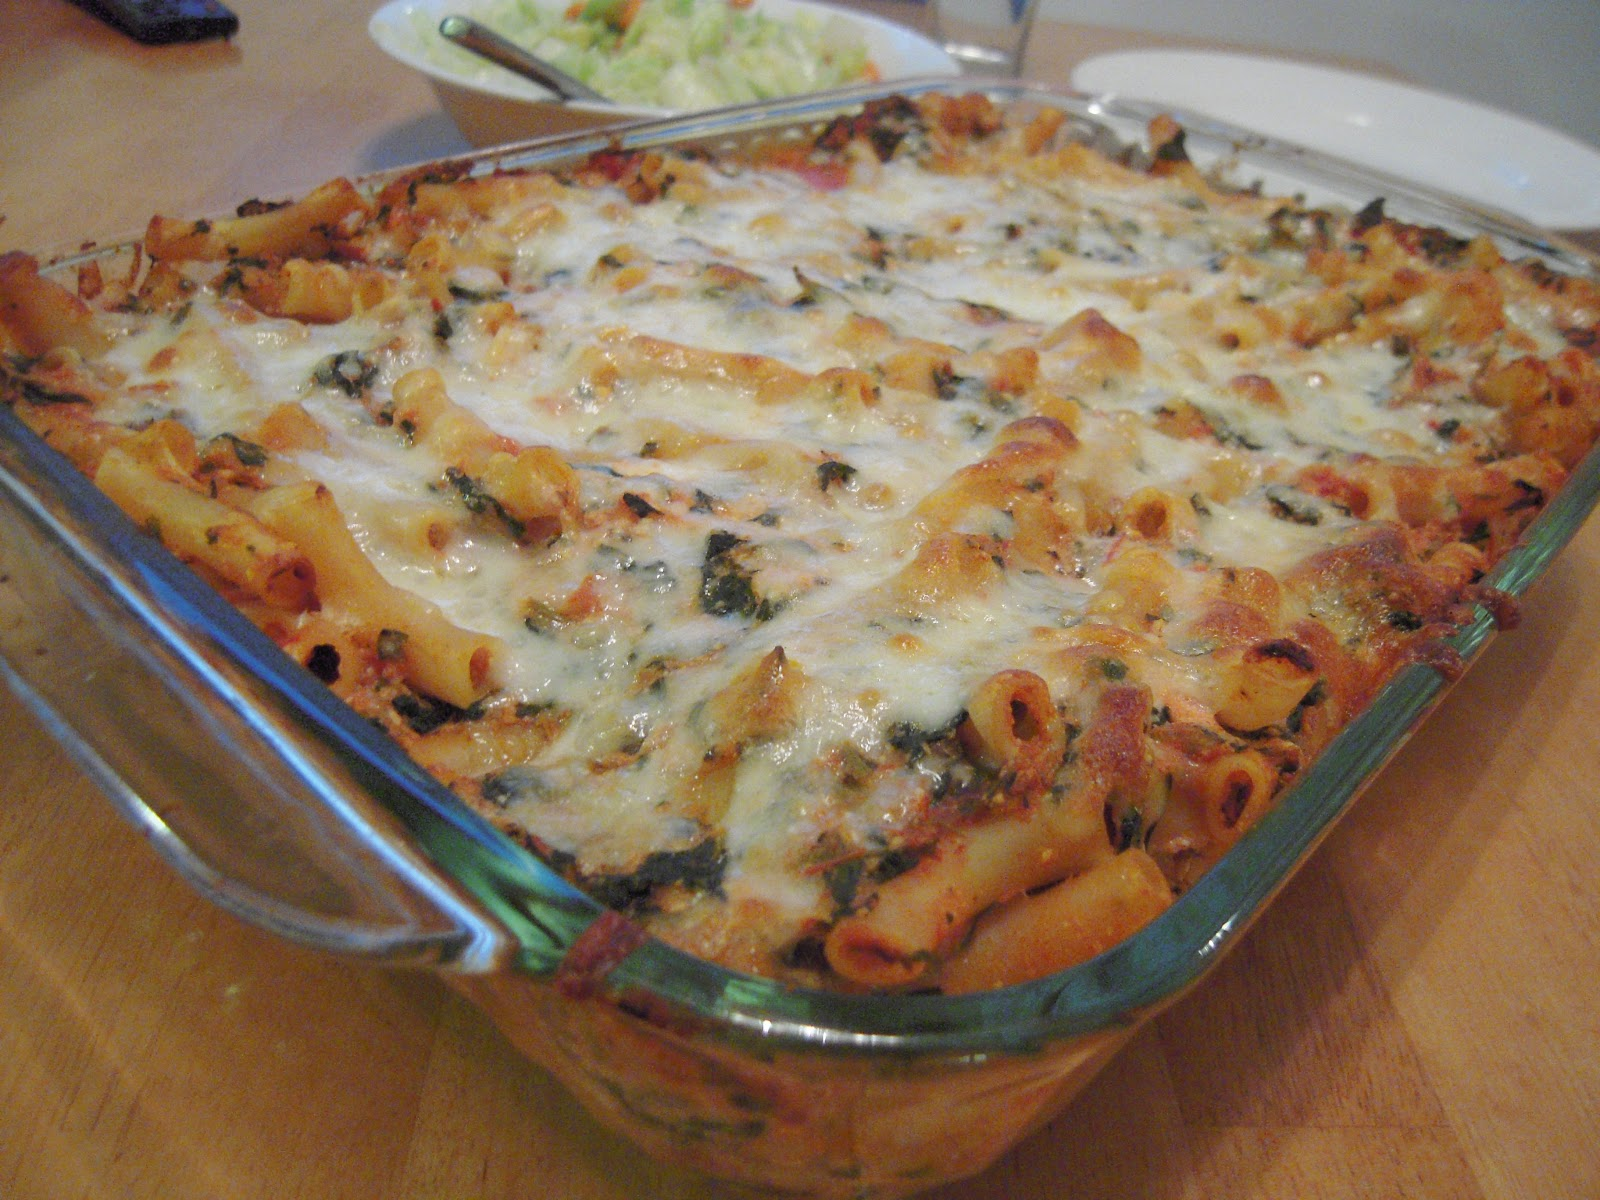 Sarah's Fares: Baked Ziti with Spinach